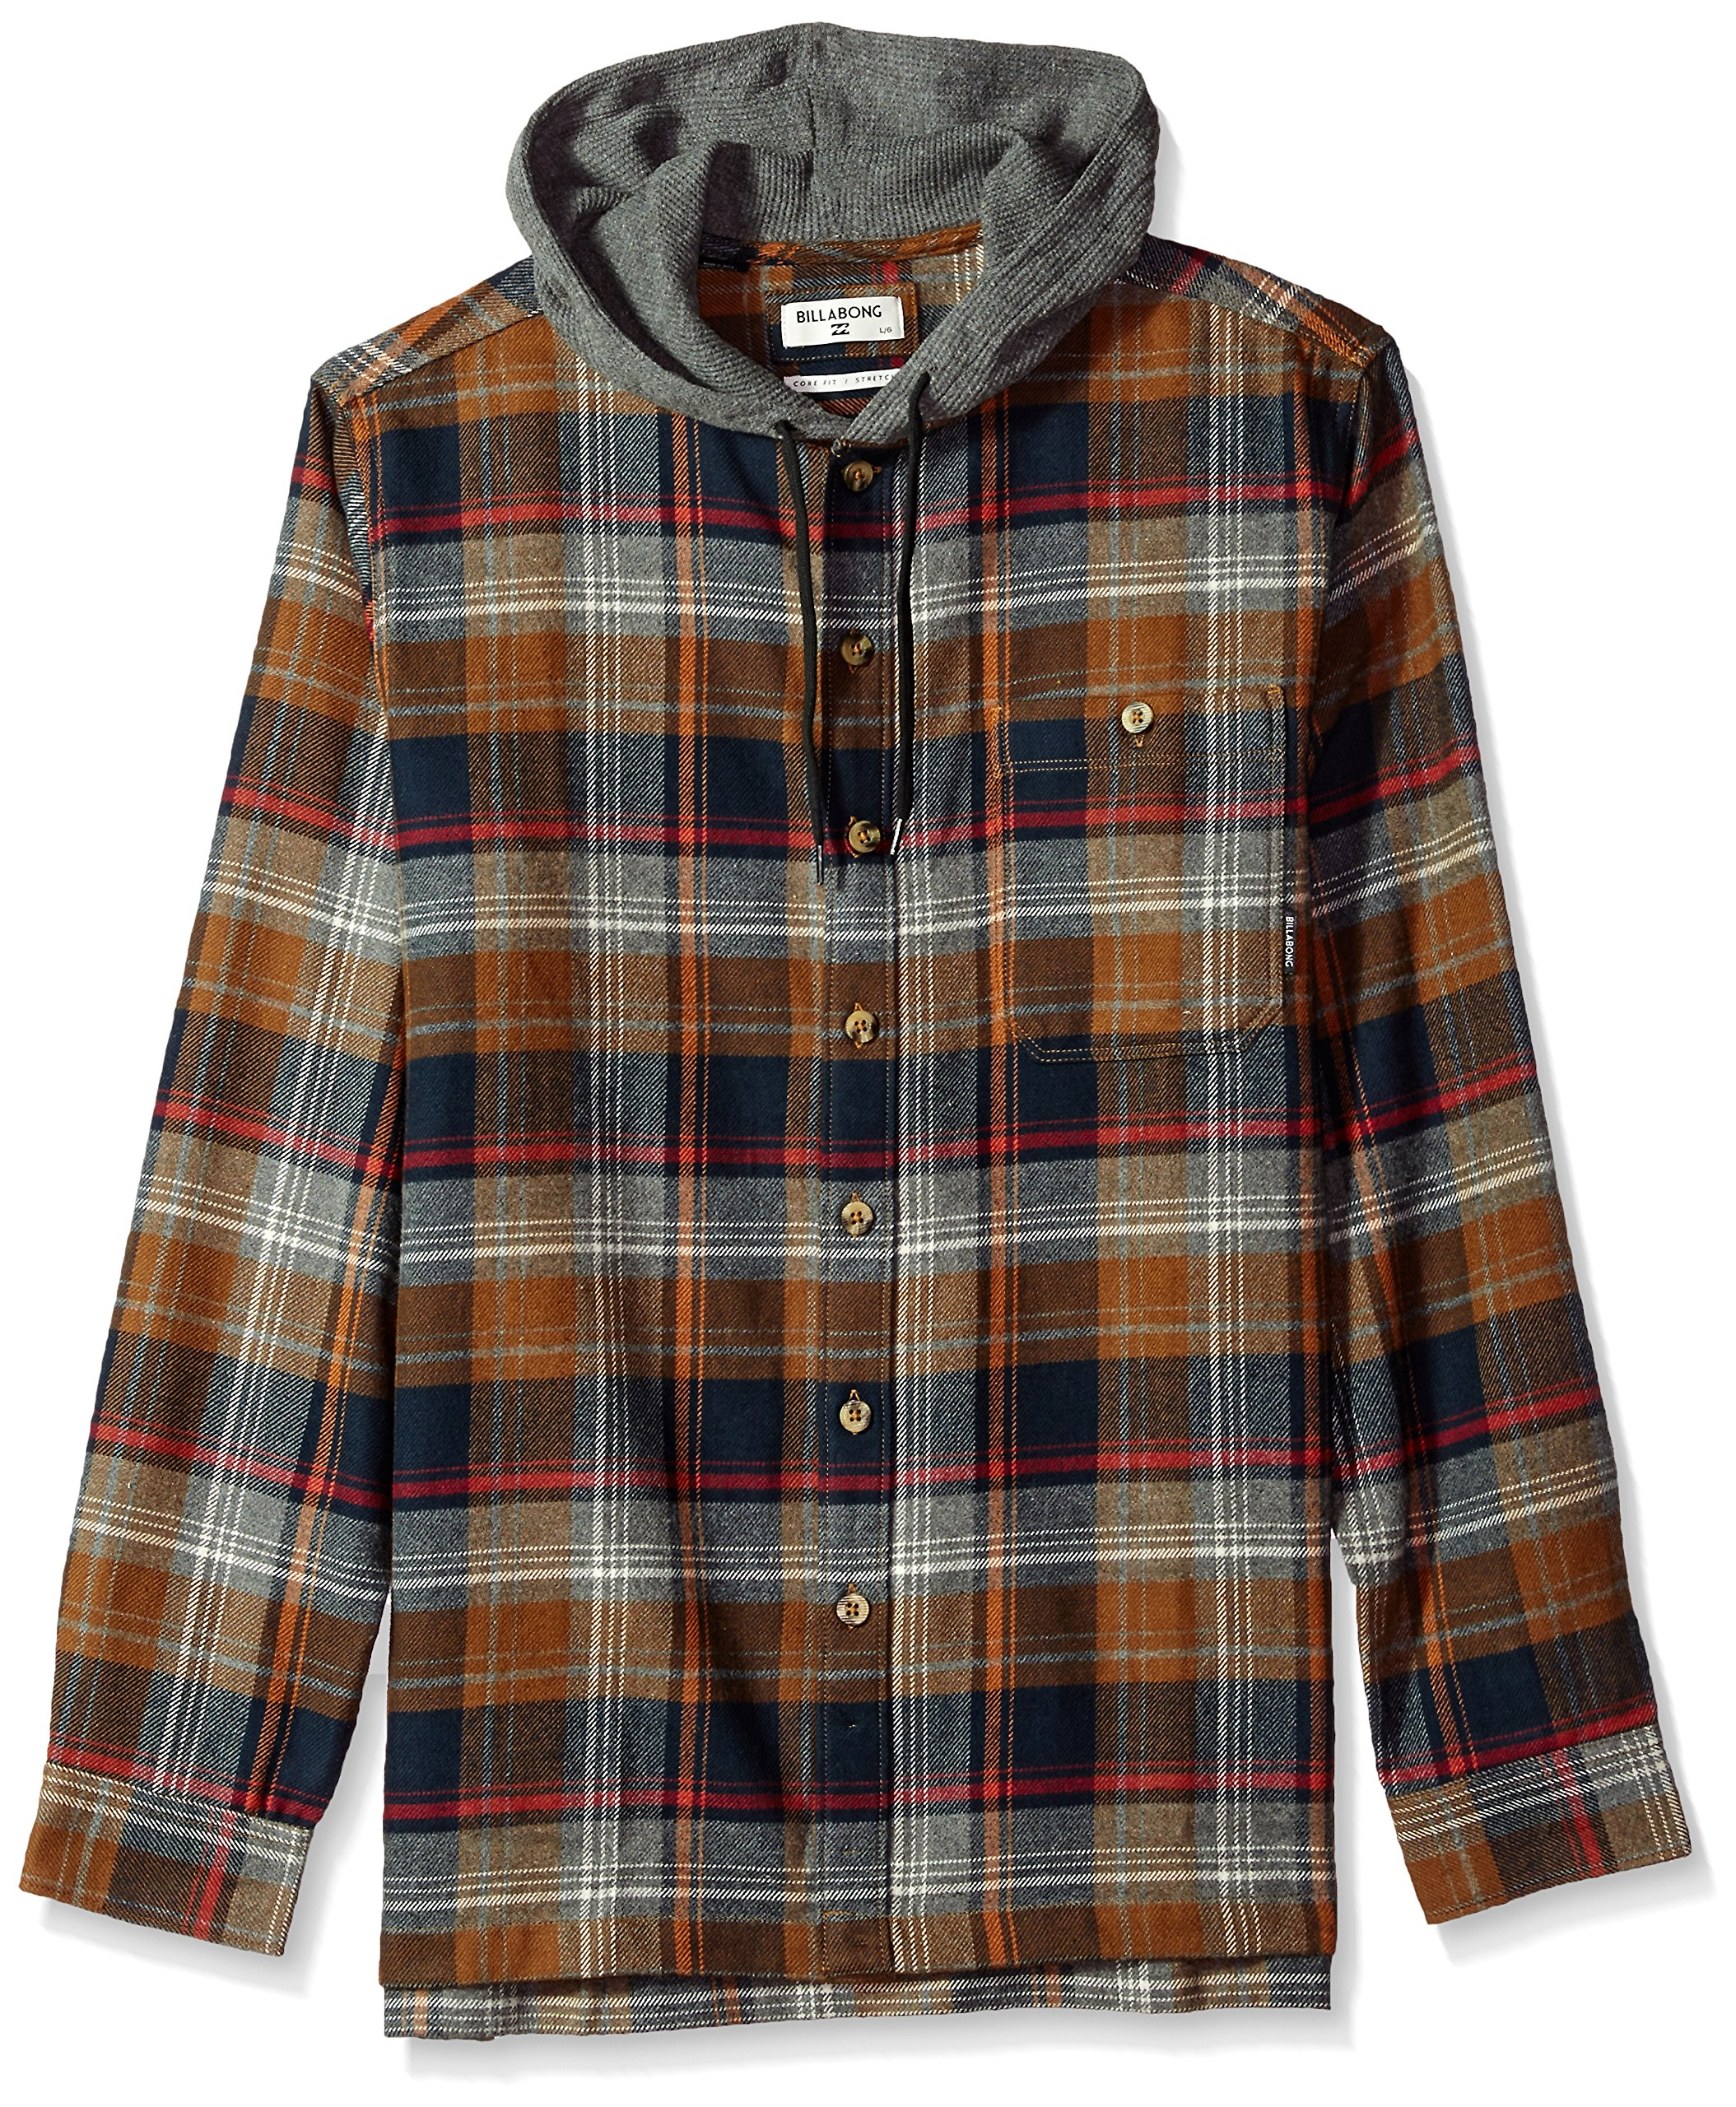 Billabong Men's Baja Flannel, Tobacco S